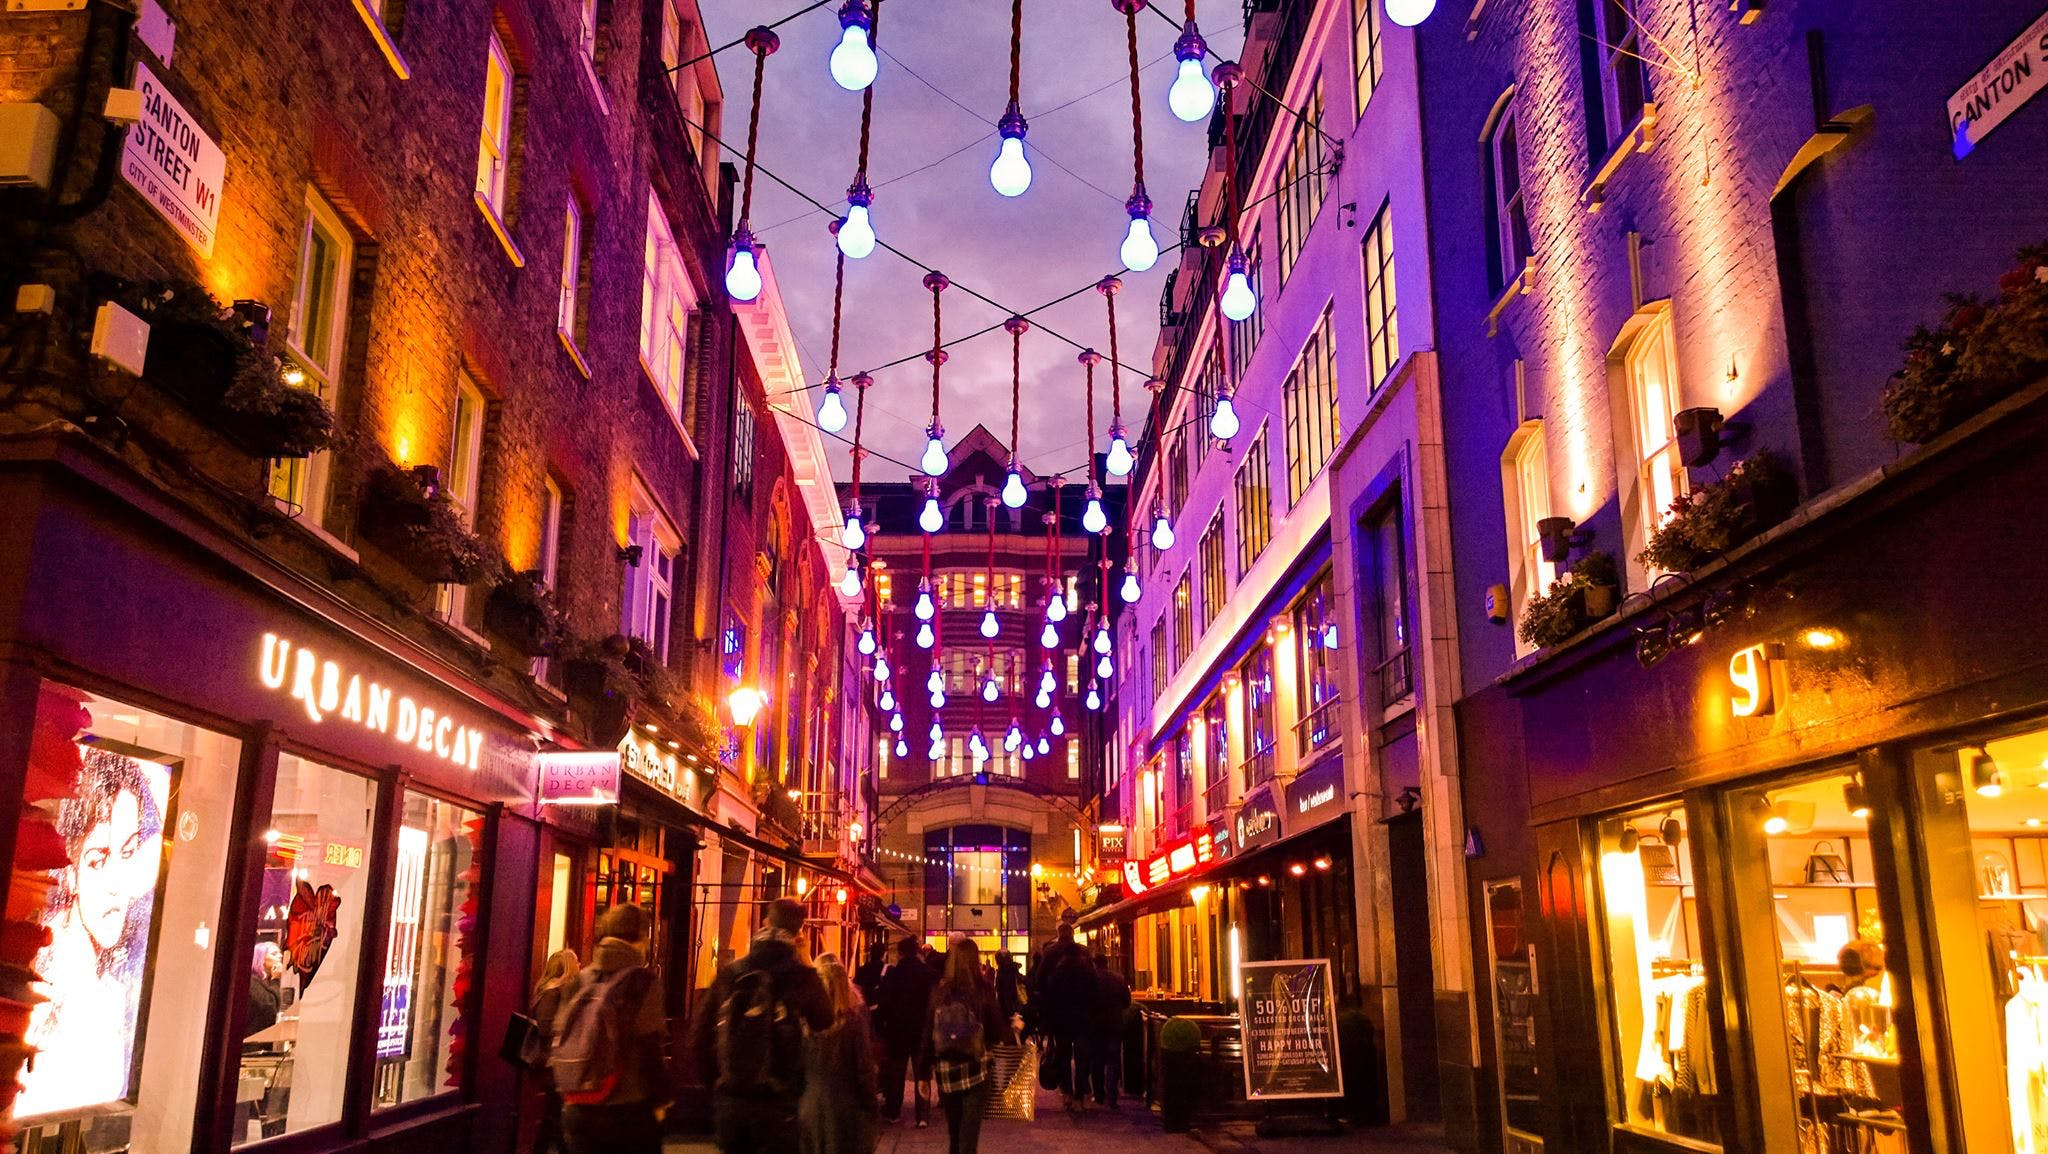 Free stock photo of #carnaby, #city, #england, #europe